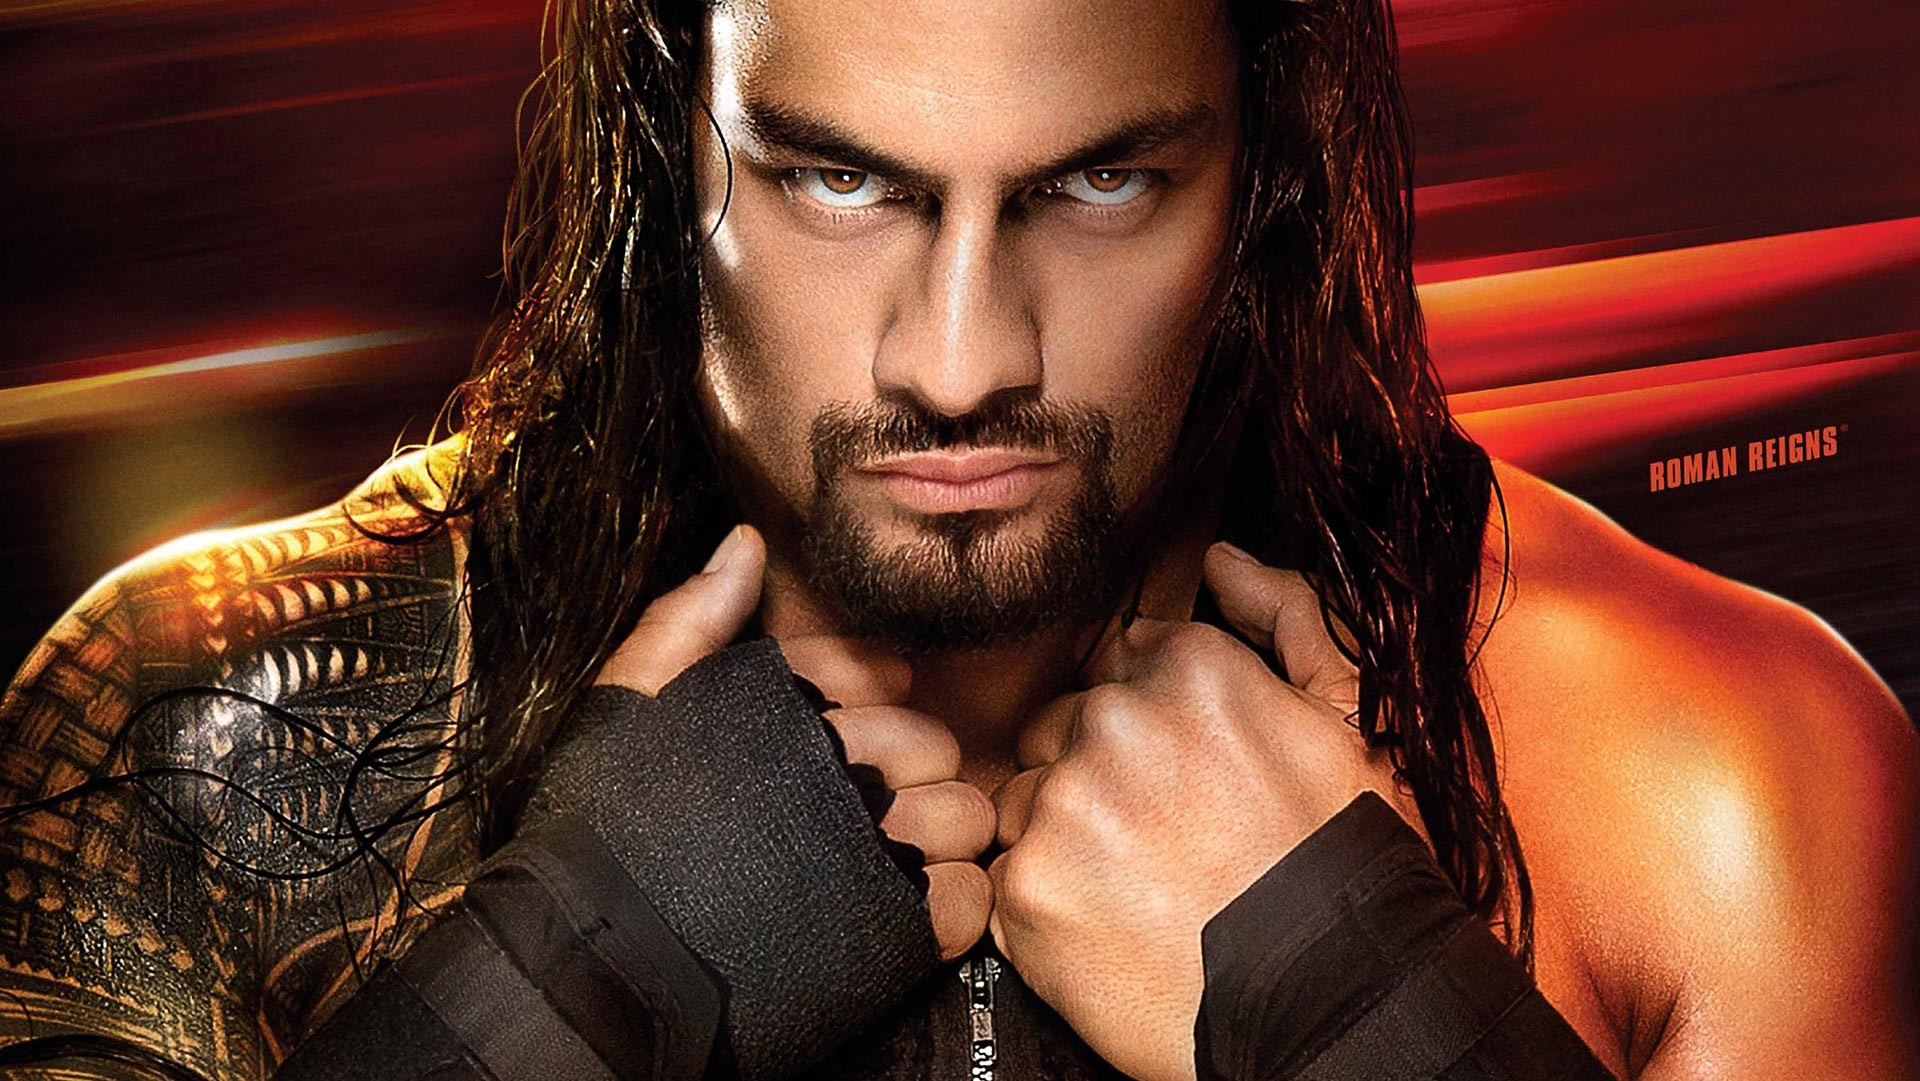 1920x1081 Roman Reigns. 12 Images